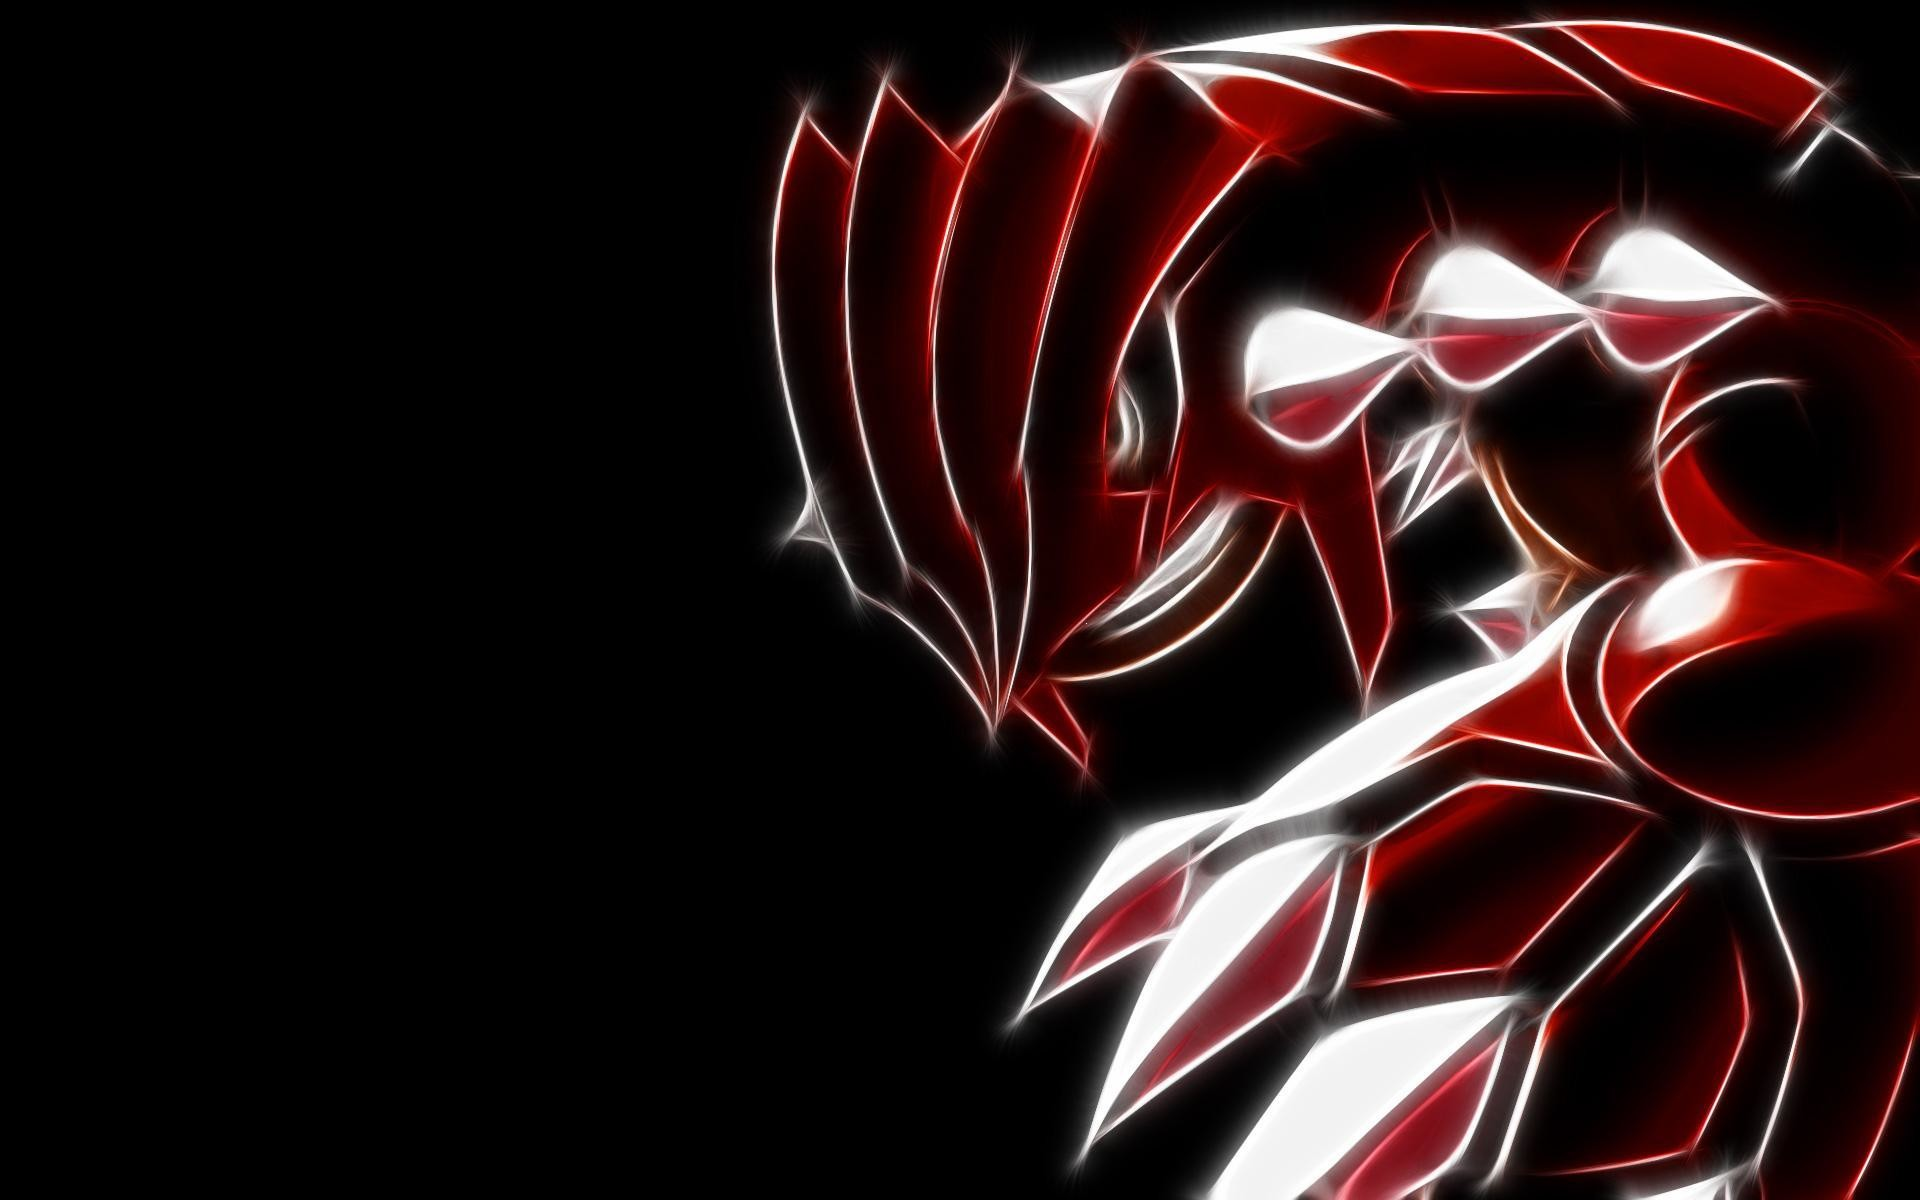 Res: 1920x1200, All Legendary Pokemon Pics by Ardal Beneze on WALLPORT